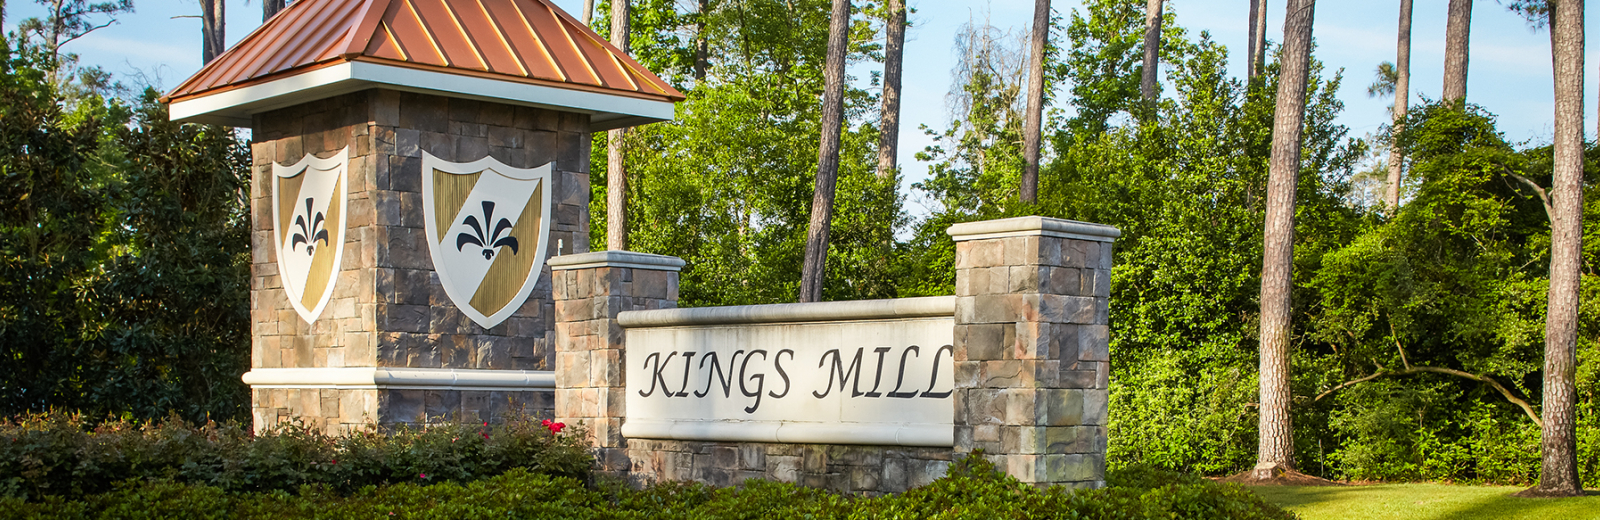 Kings Mill entry